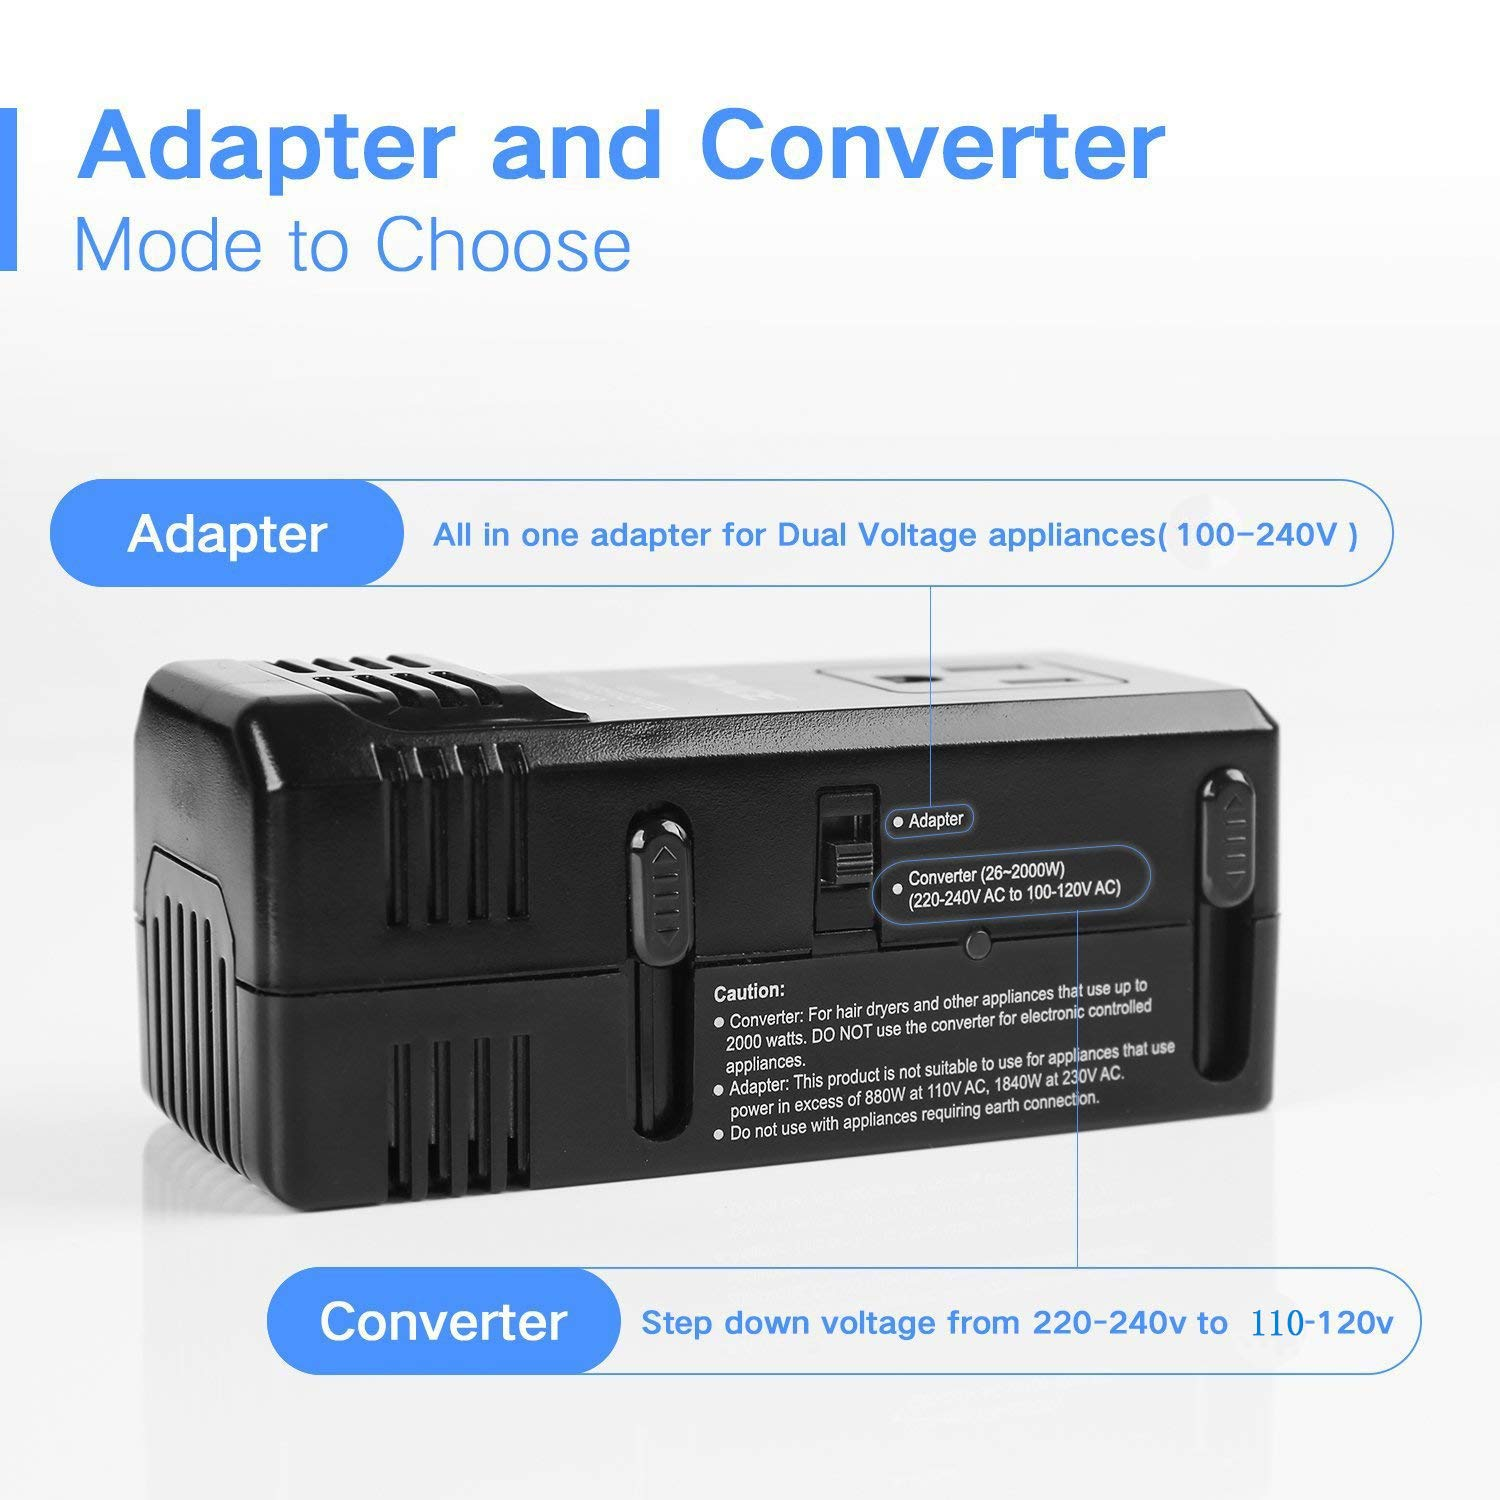 DOACE 1875W Travel Power Converter and Adapter Combo, Step Down Voltage Transformer 220V to 110V for Hair Dryers, International EU/UK/AU/US Wall Charger Plugs for 150 Countries (1875W) (1875W) by DOACE (Image #2)